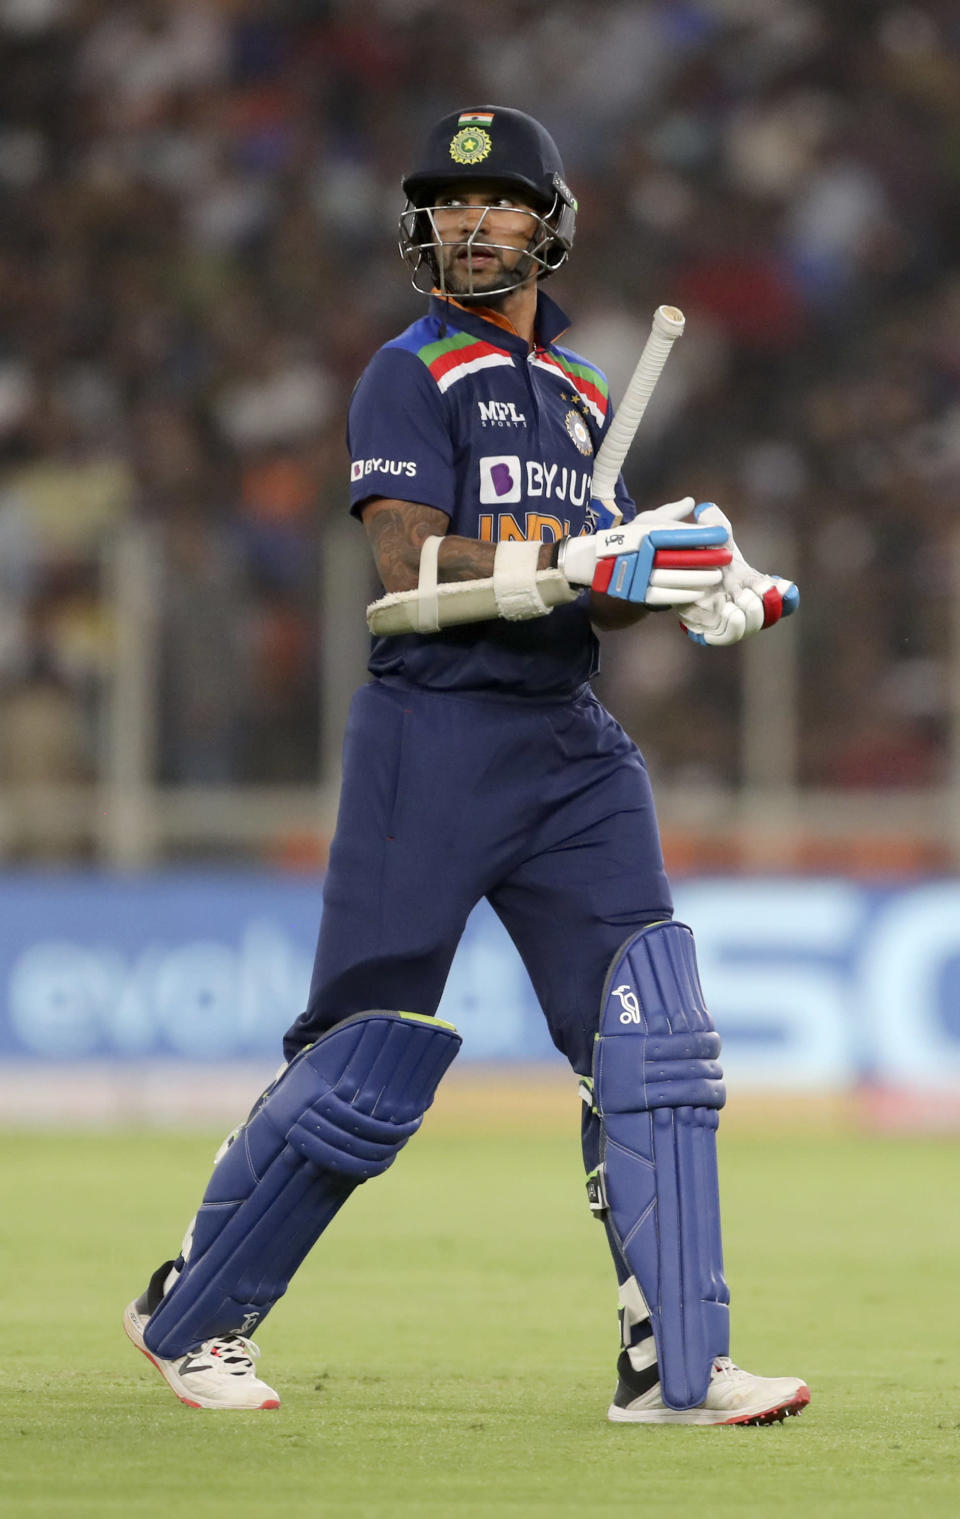 India's Shikhar Dhawan walks back after his dismissal during the first Twenty20 cricket match between India and England in Ahmedabad, India, Friday, March 12, 2021. (AP Photo/Aijaz Rahi)